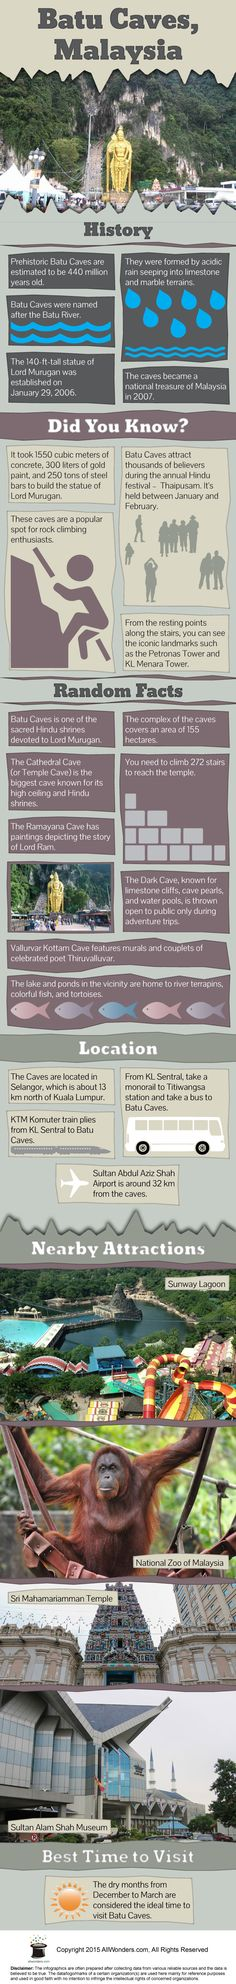 Infographic showing facts and information about Batu Caves. This gives you a comprehensive detail of the place.